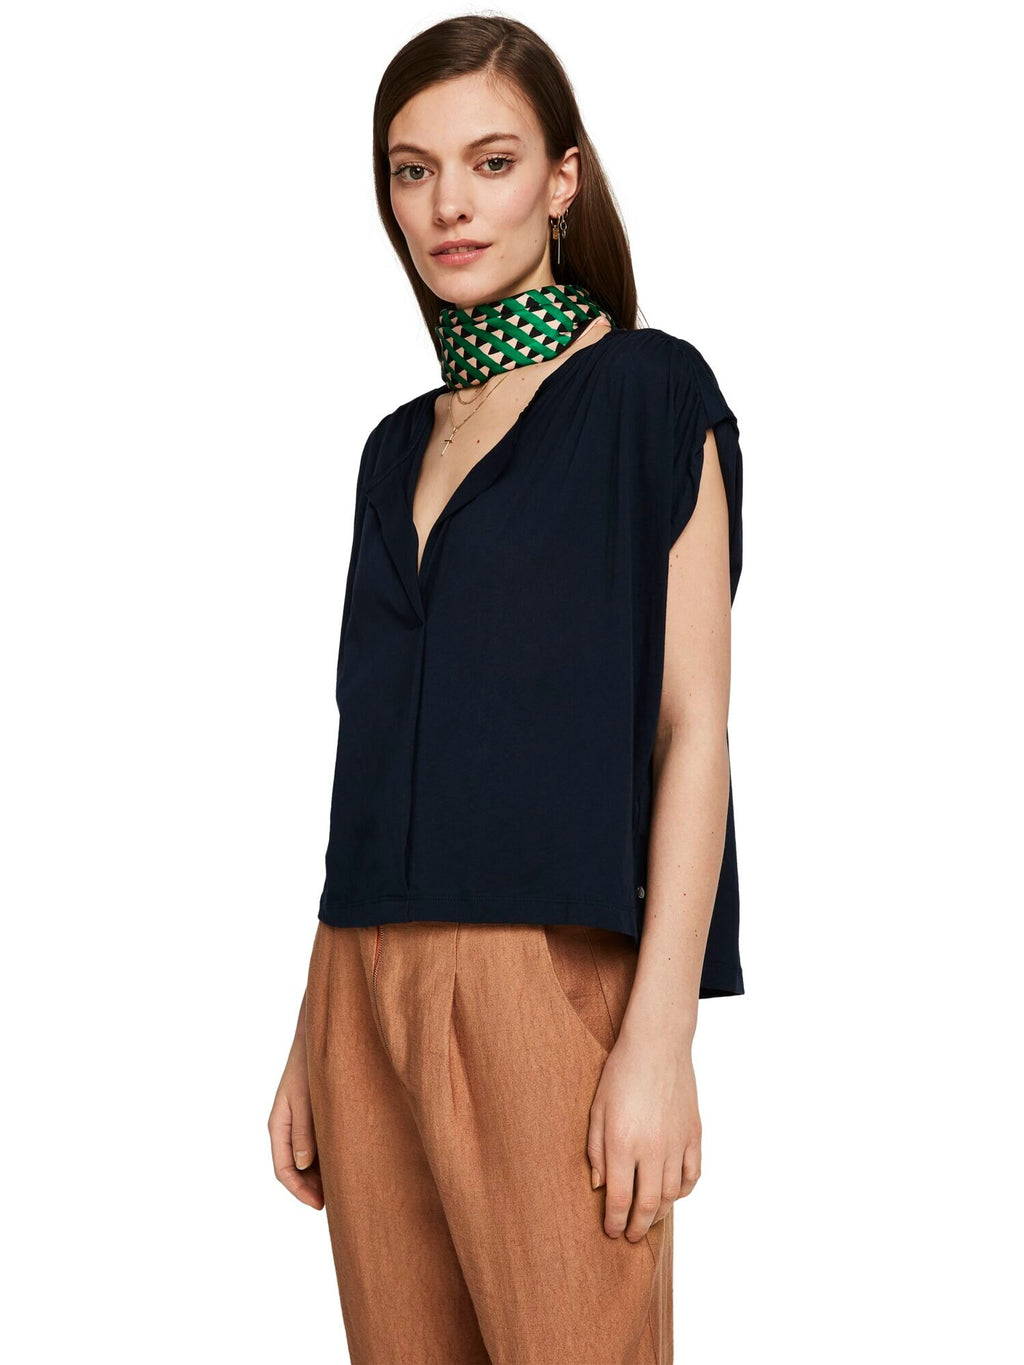 Buy Gathered Jersey Top from SCOTCH AND SODA at PAYA boutique